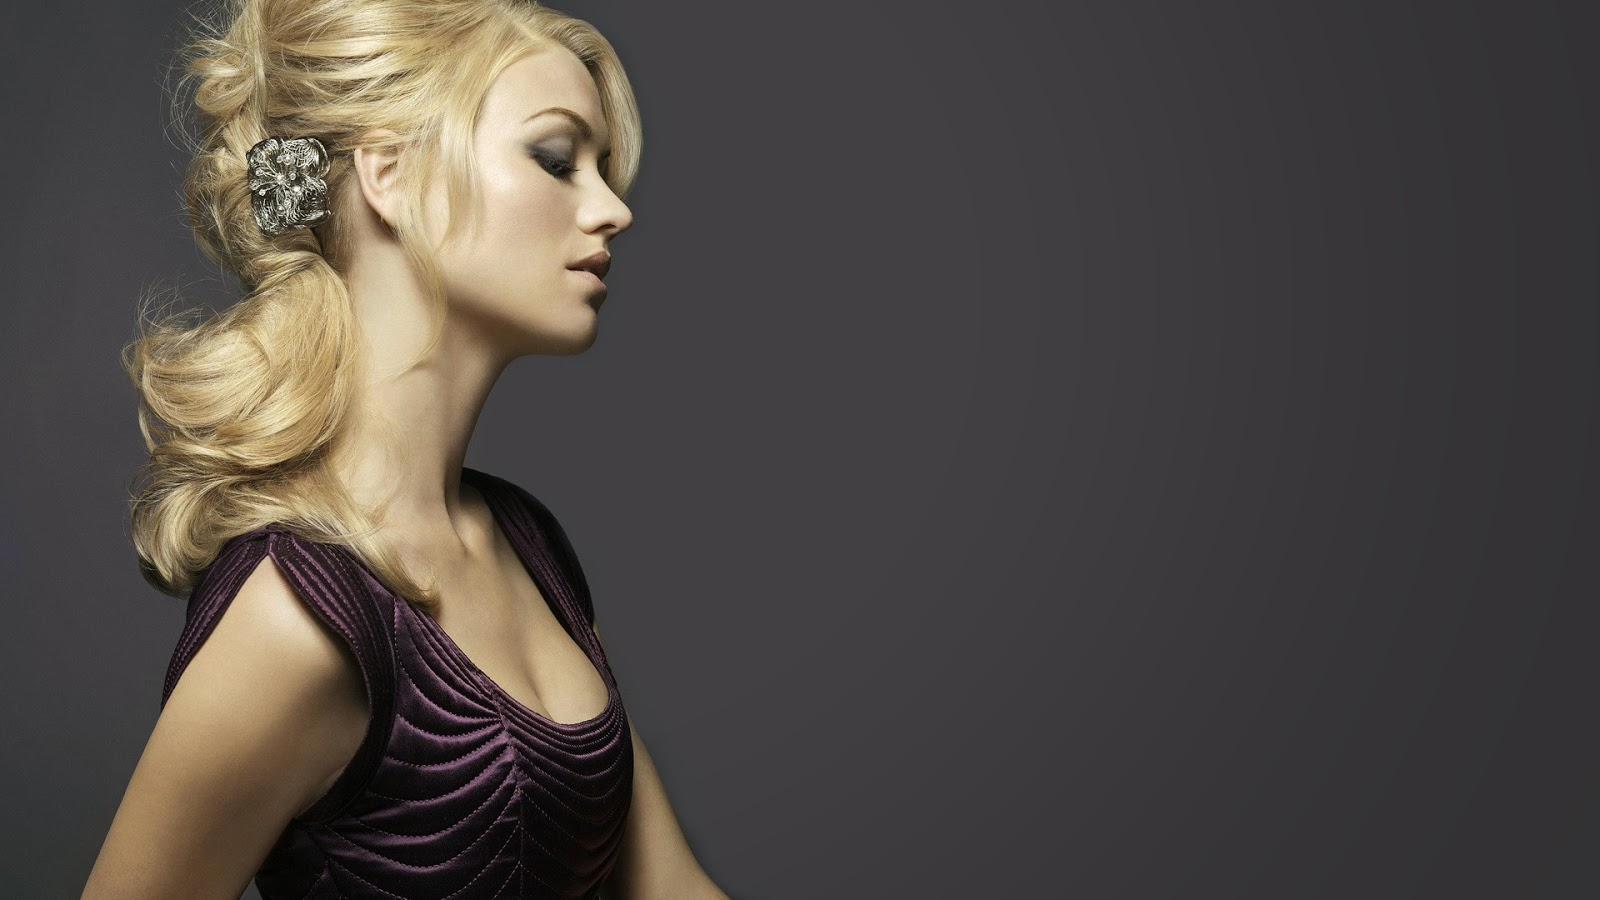 12 Beautiful Yvonne Strahovski Wallpapers HD   Tapandaola111 1600x900